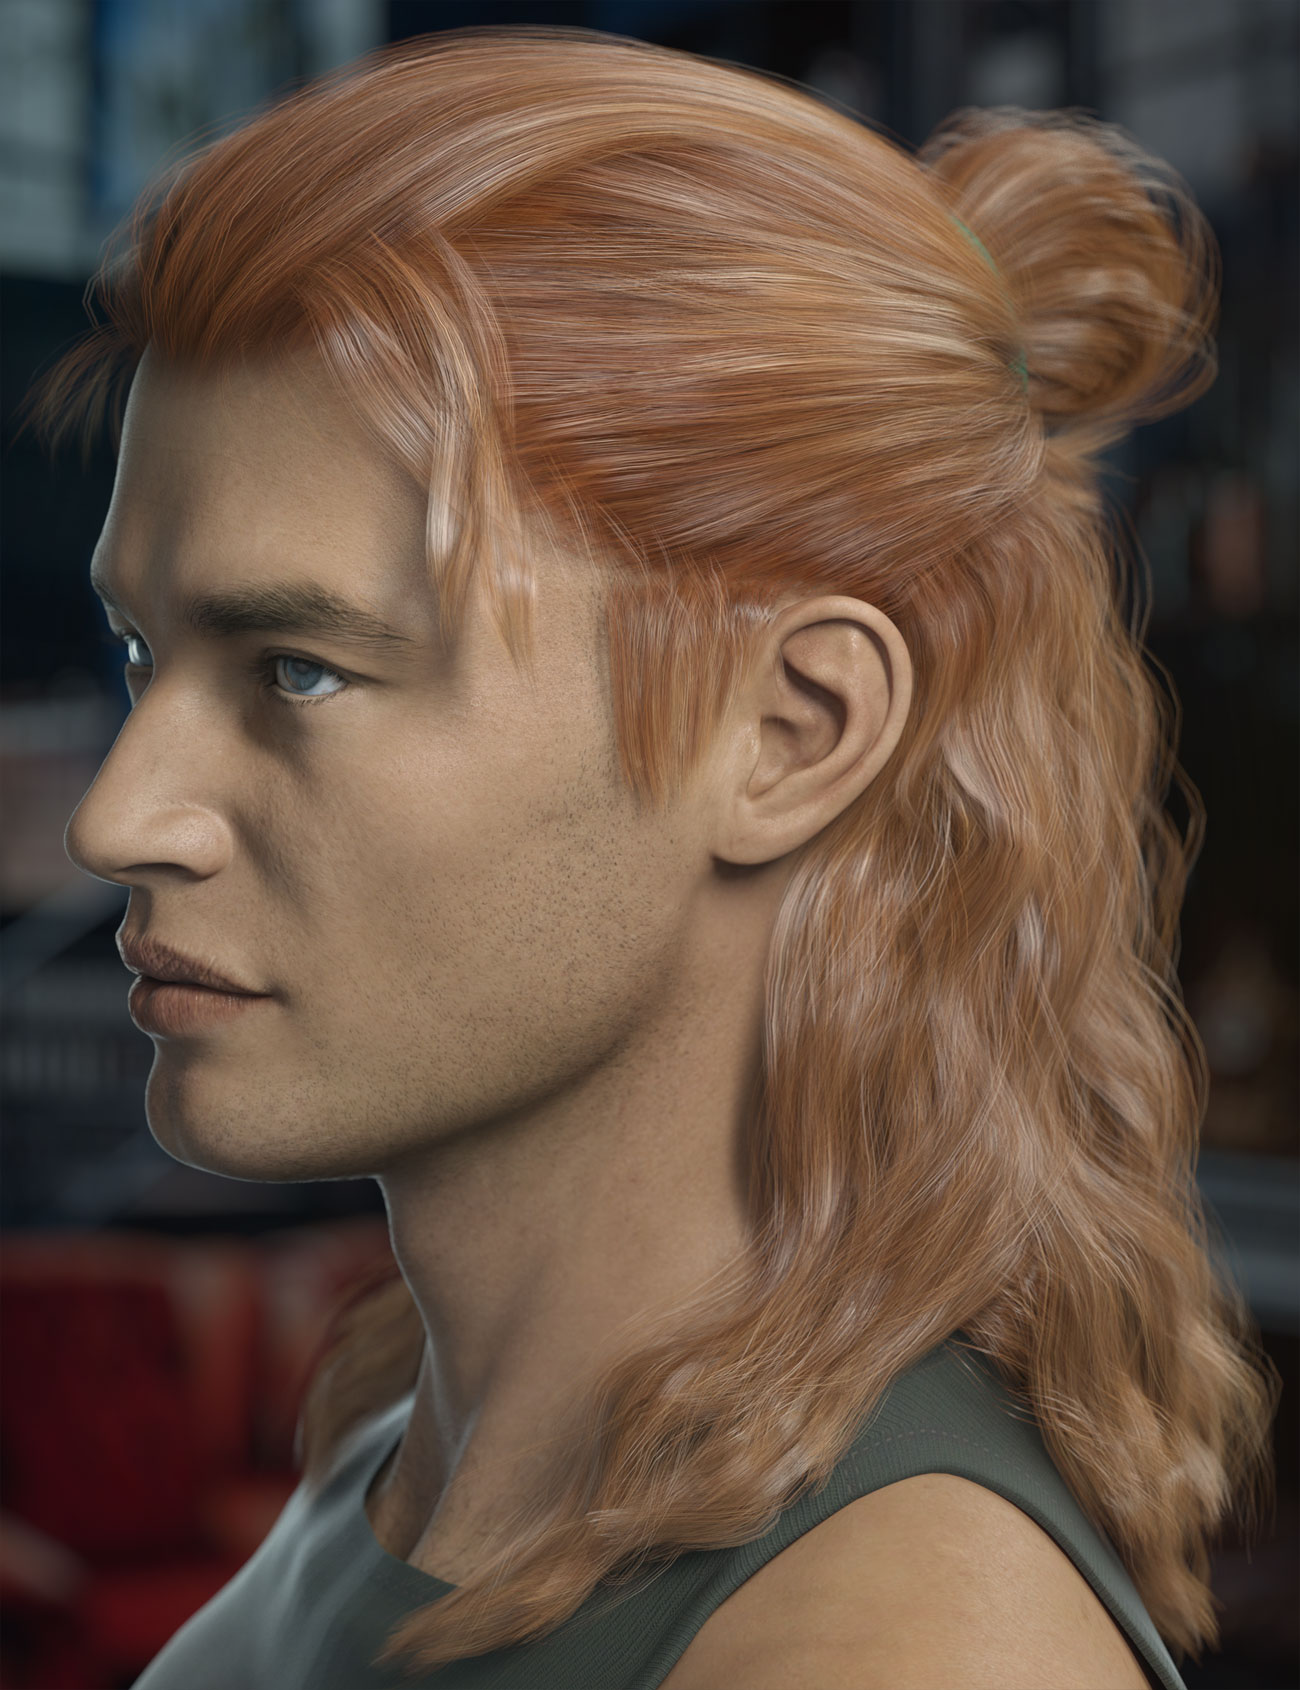 Briggs Hair for Genesis 8 Male and Females by: AprilYSH, 3D Models by Daz 3D